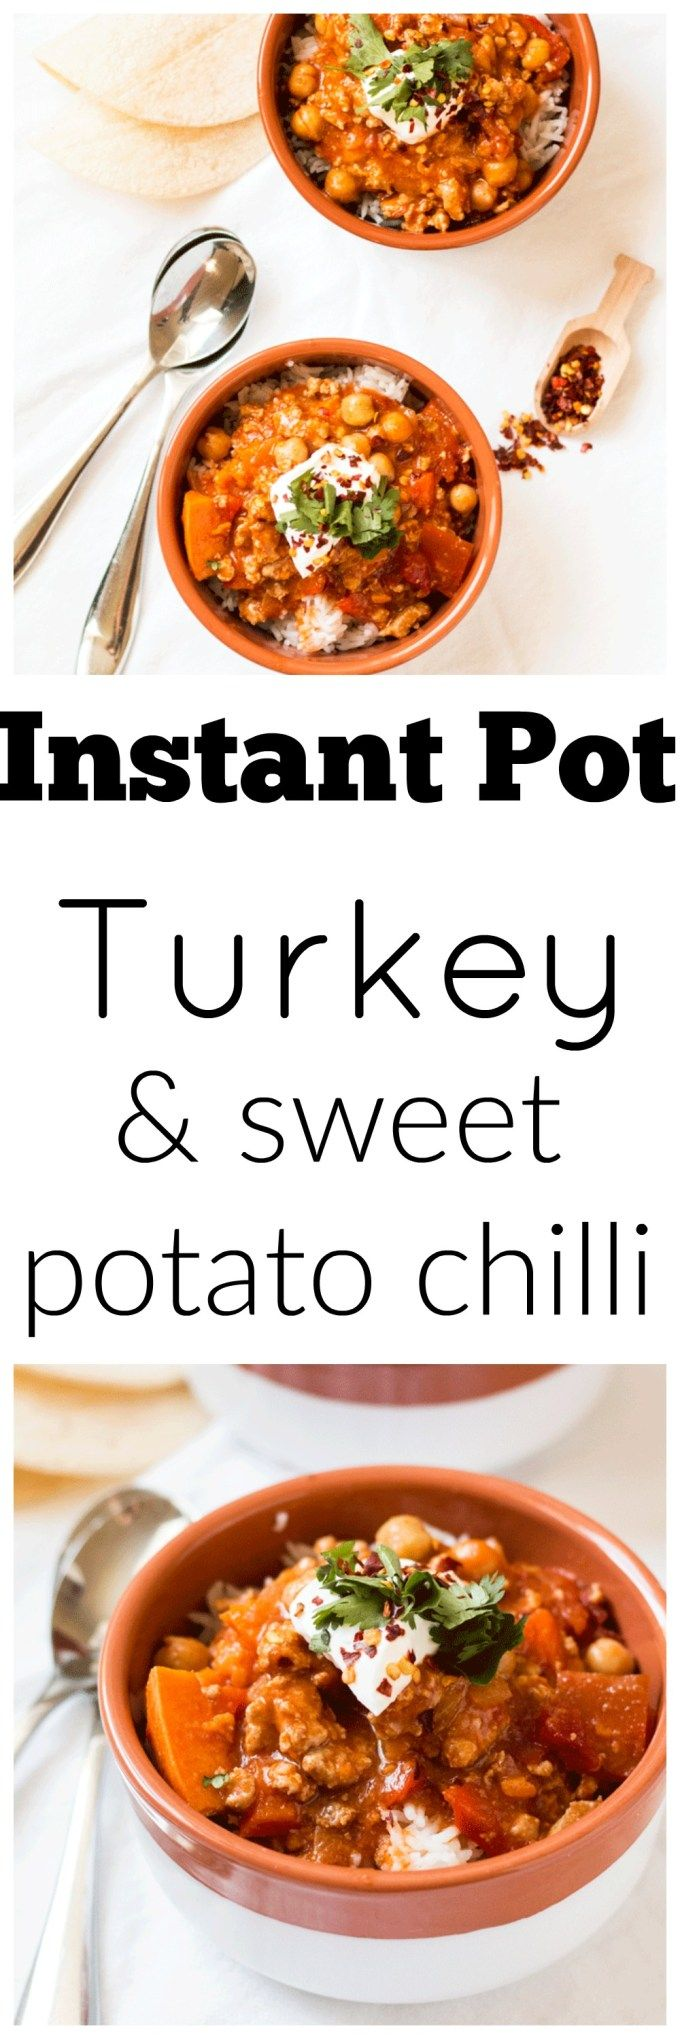 Turkey and Sweet Potato Chilli in the Instant Pot. Dinner can be super delicious and on the table in under 30 minutes. The kids will love it